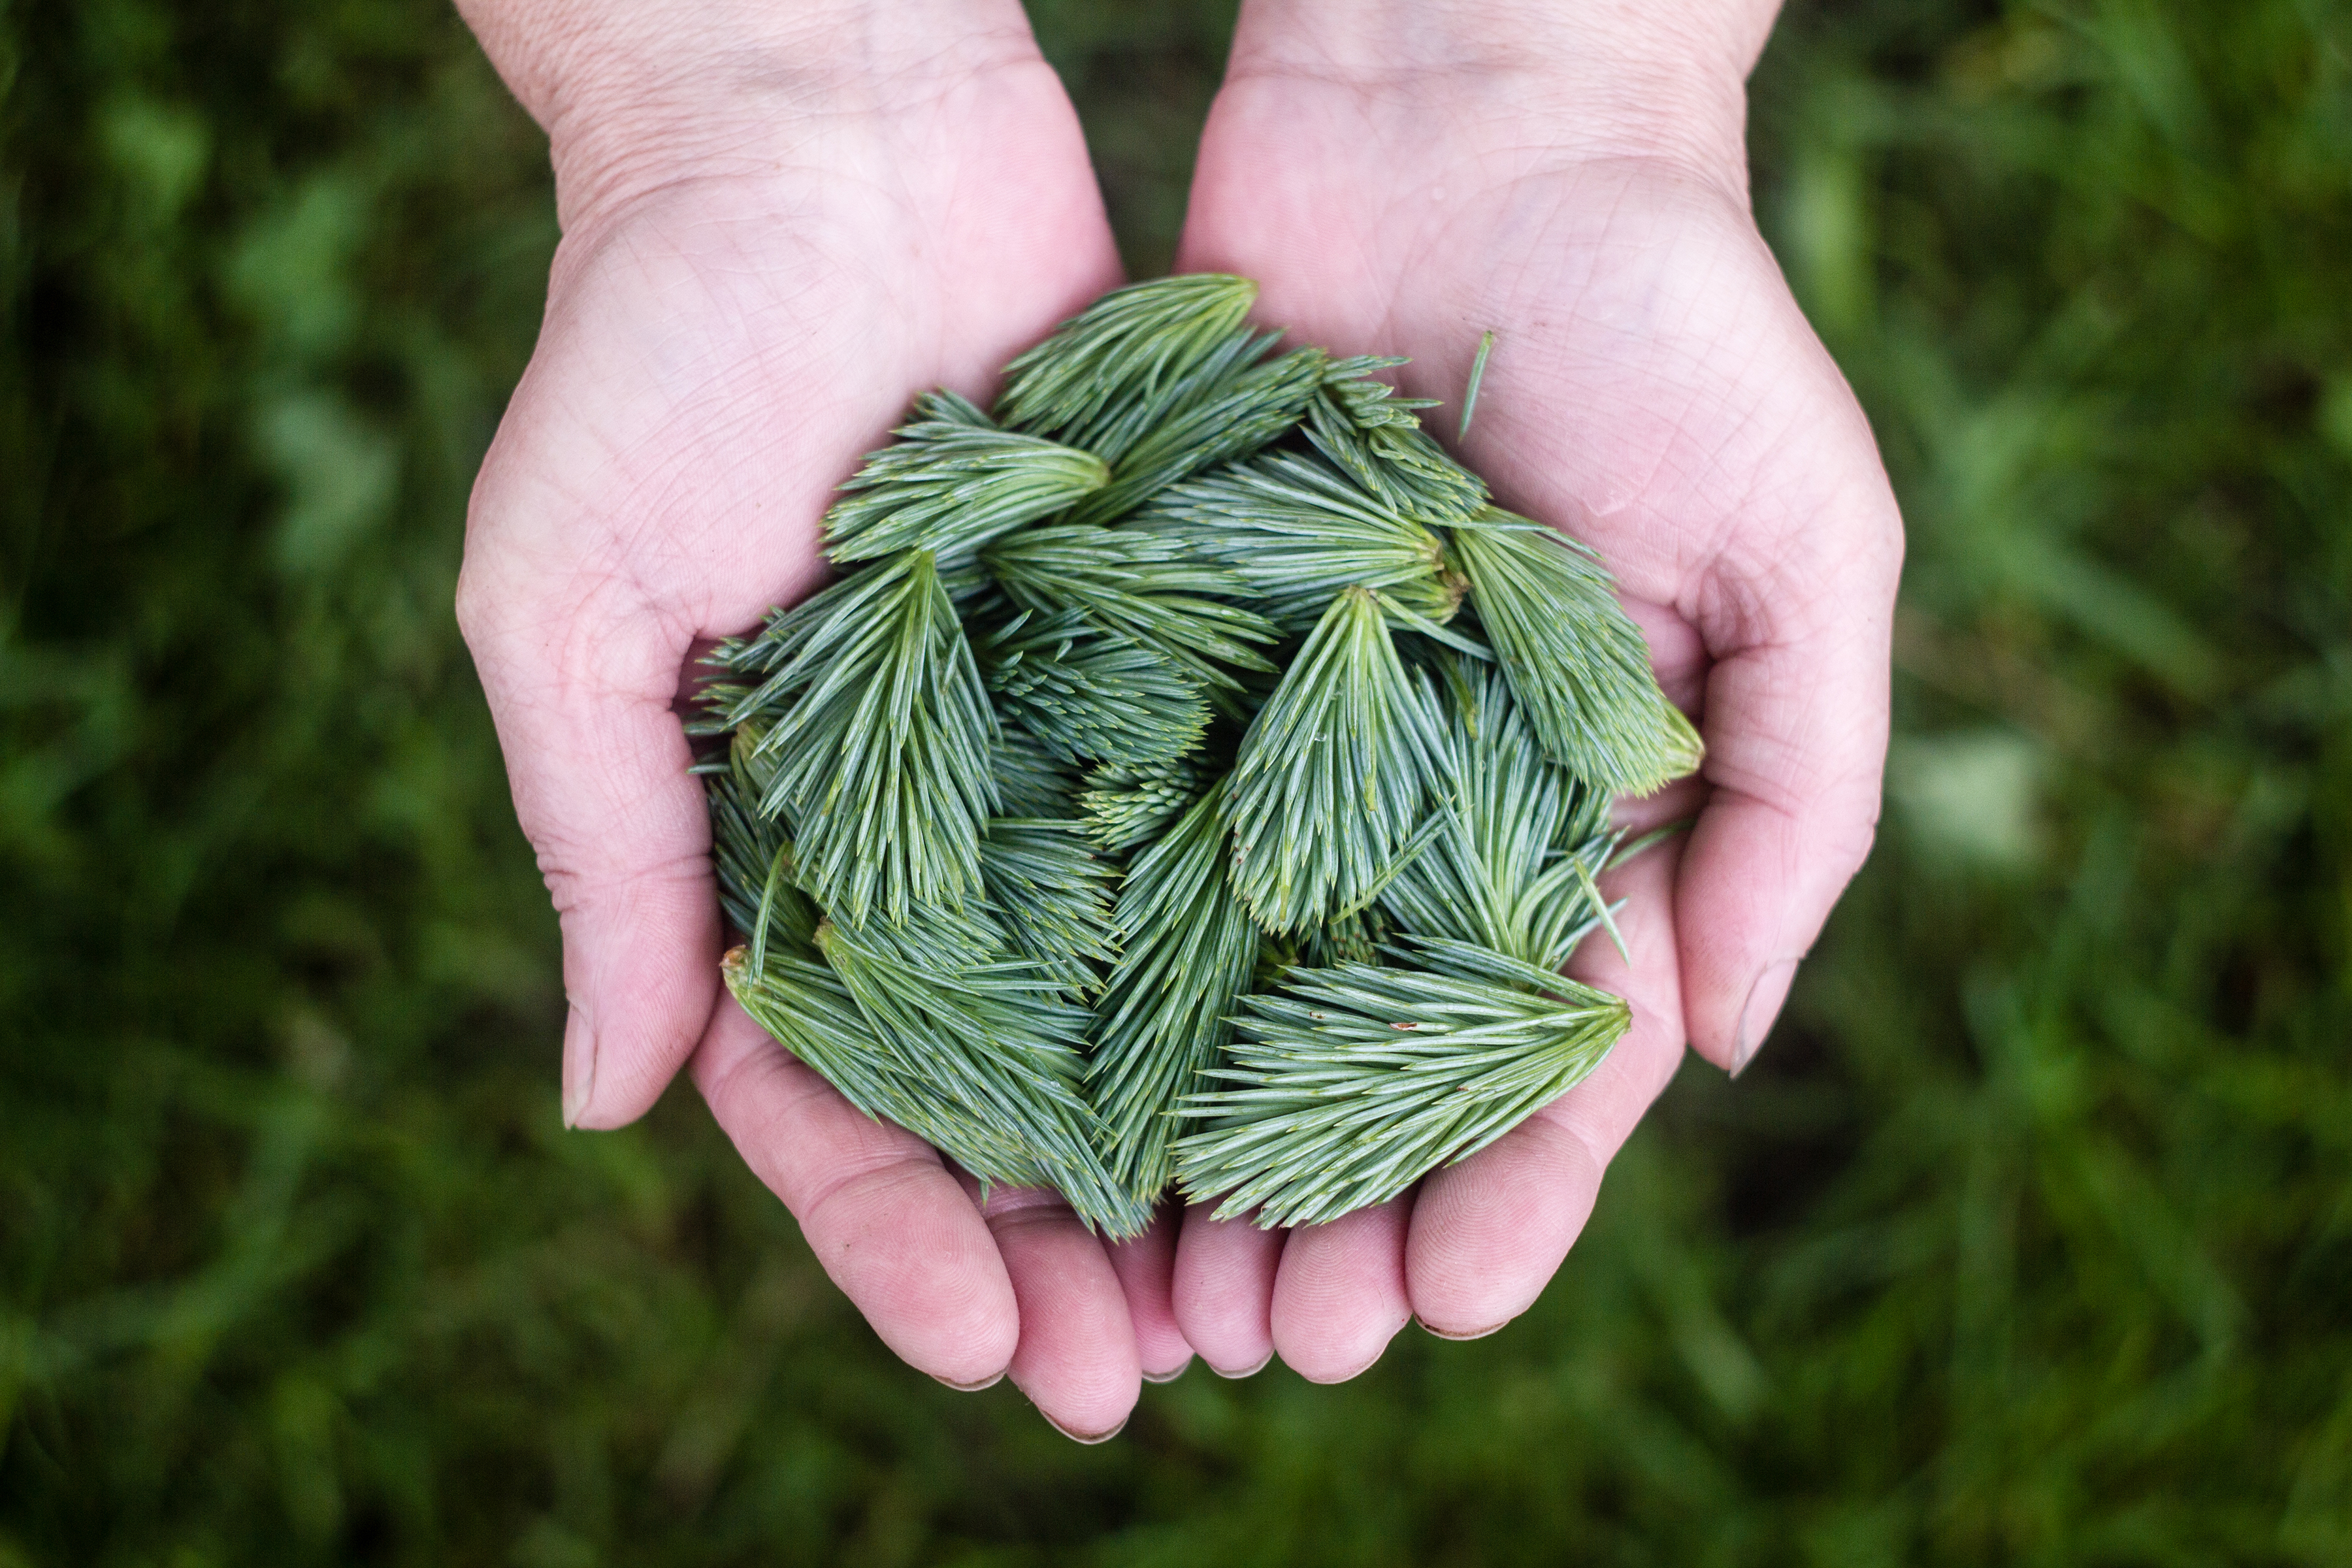 sample image of pine needles